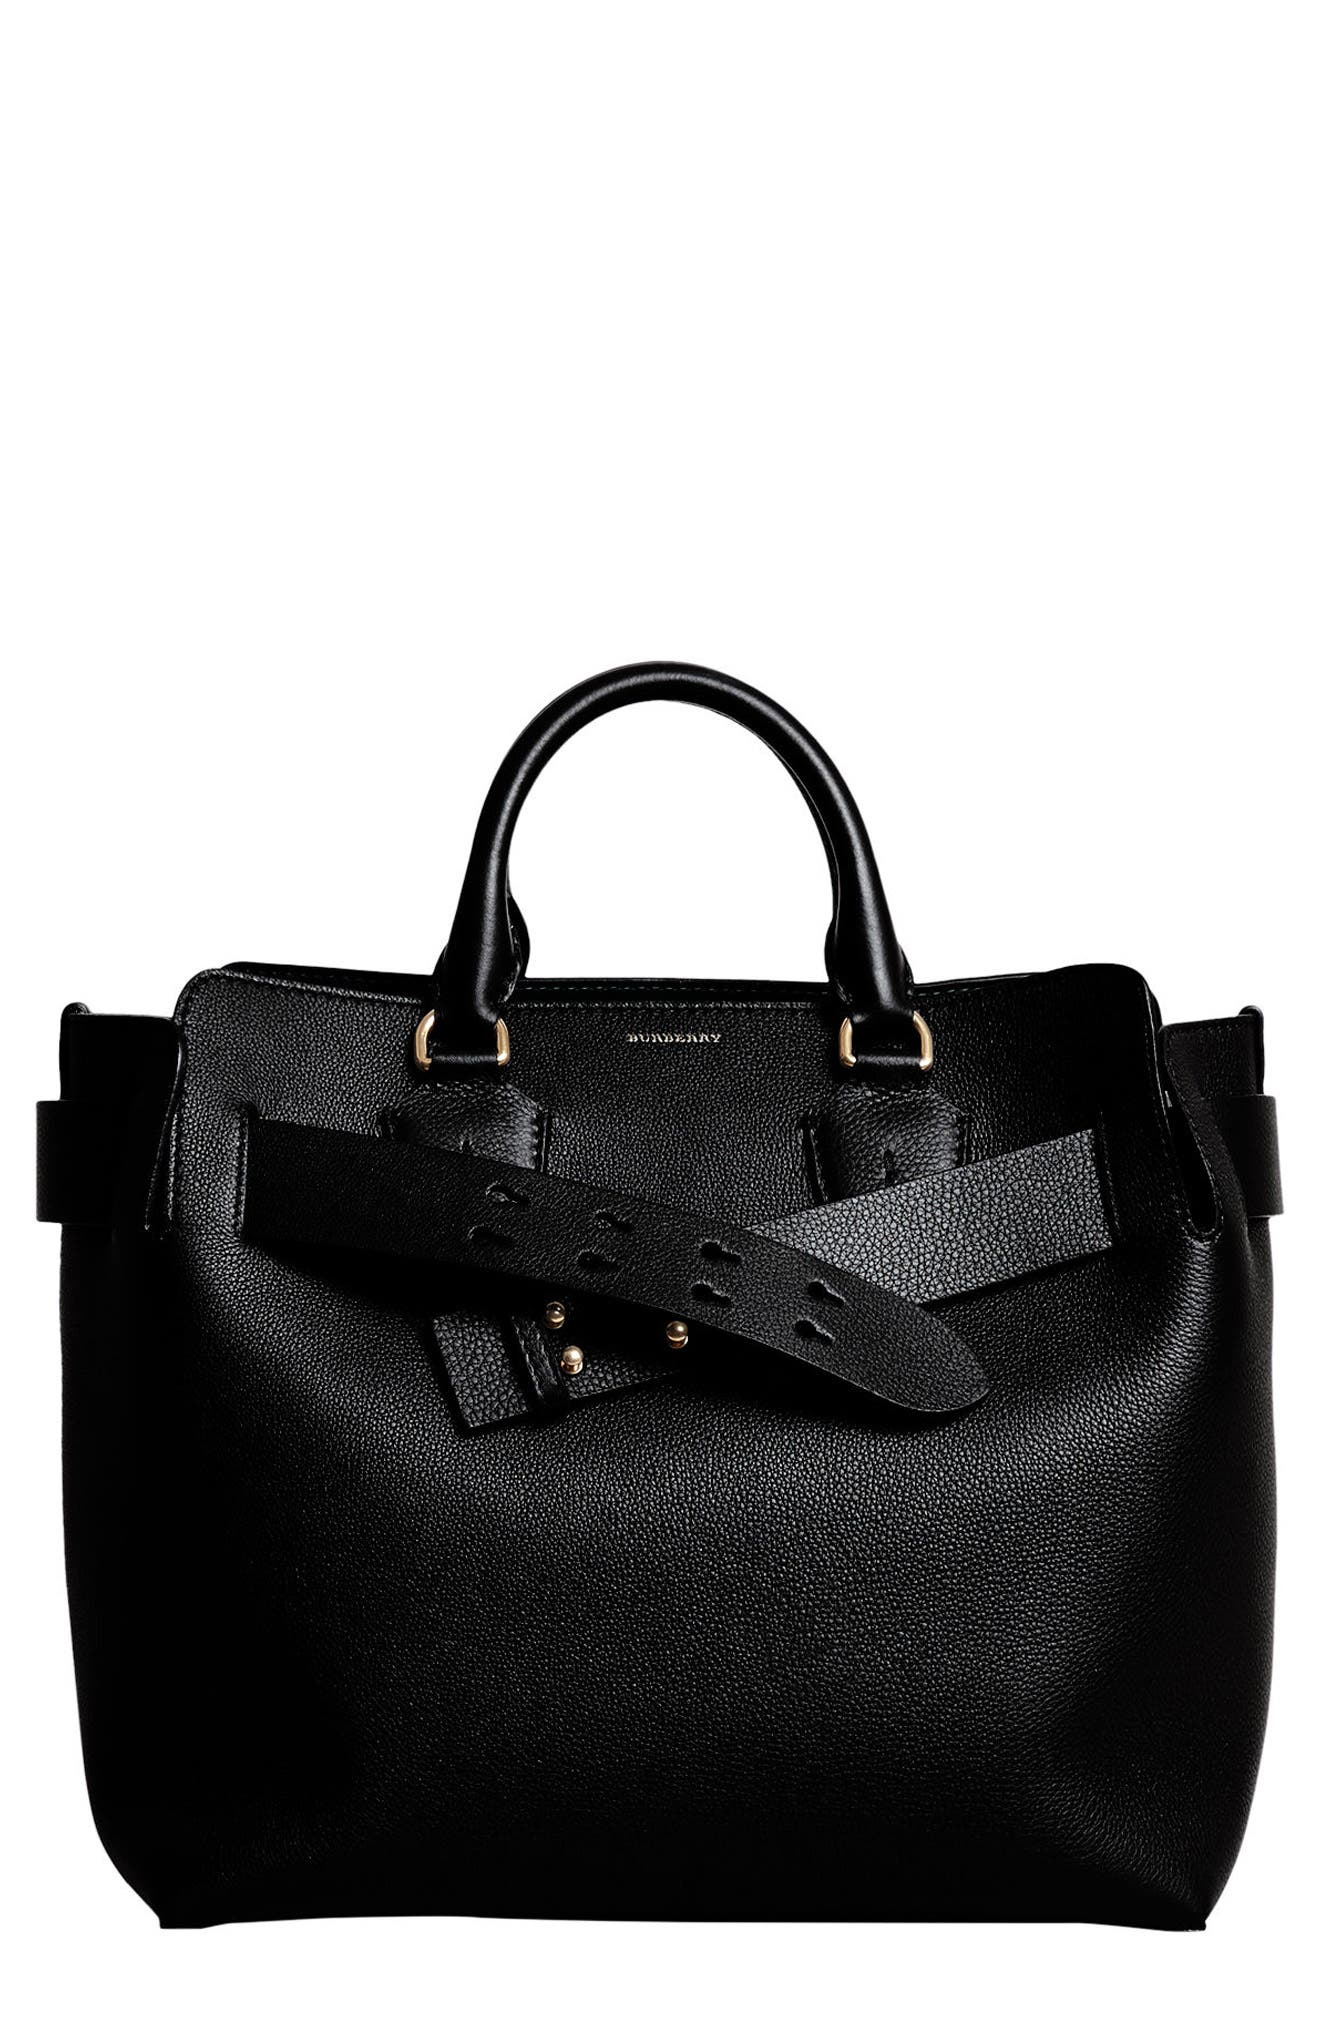 Medium Belt Bag Leather Tote,                             Main thumbnail 1, color,                             Black